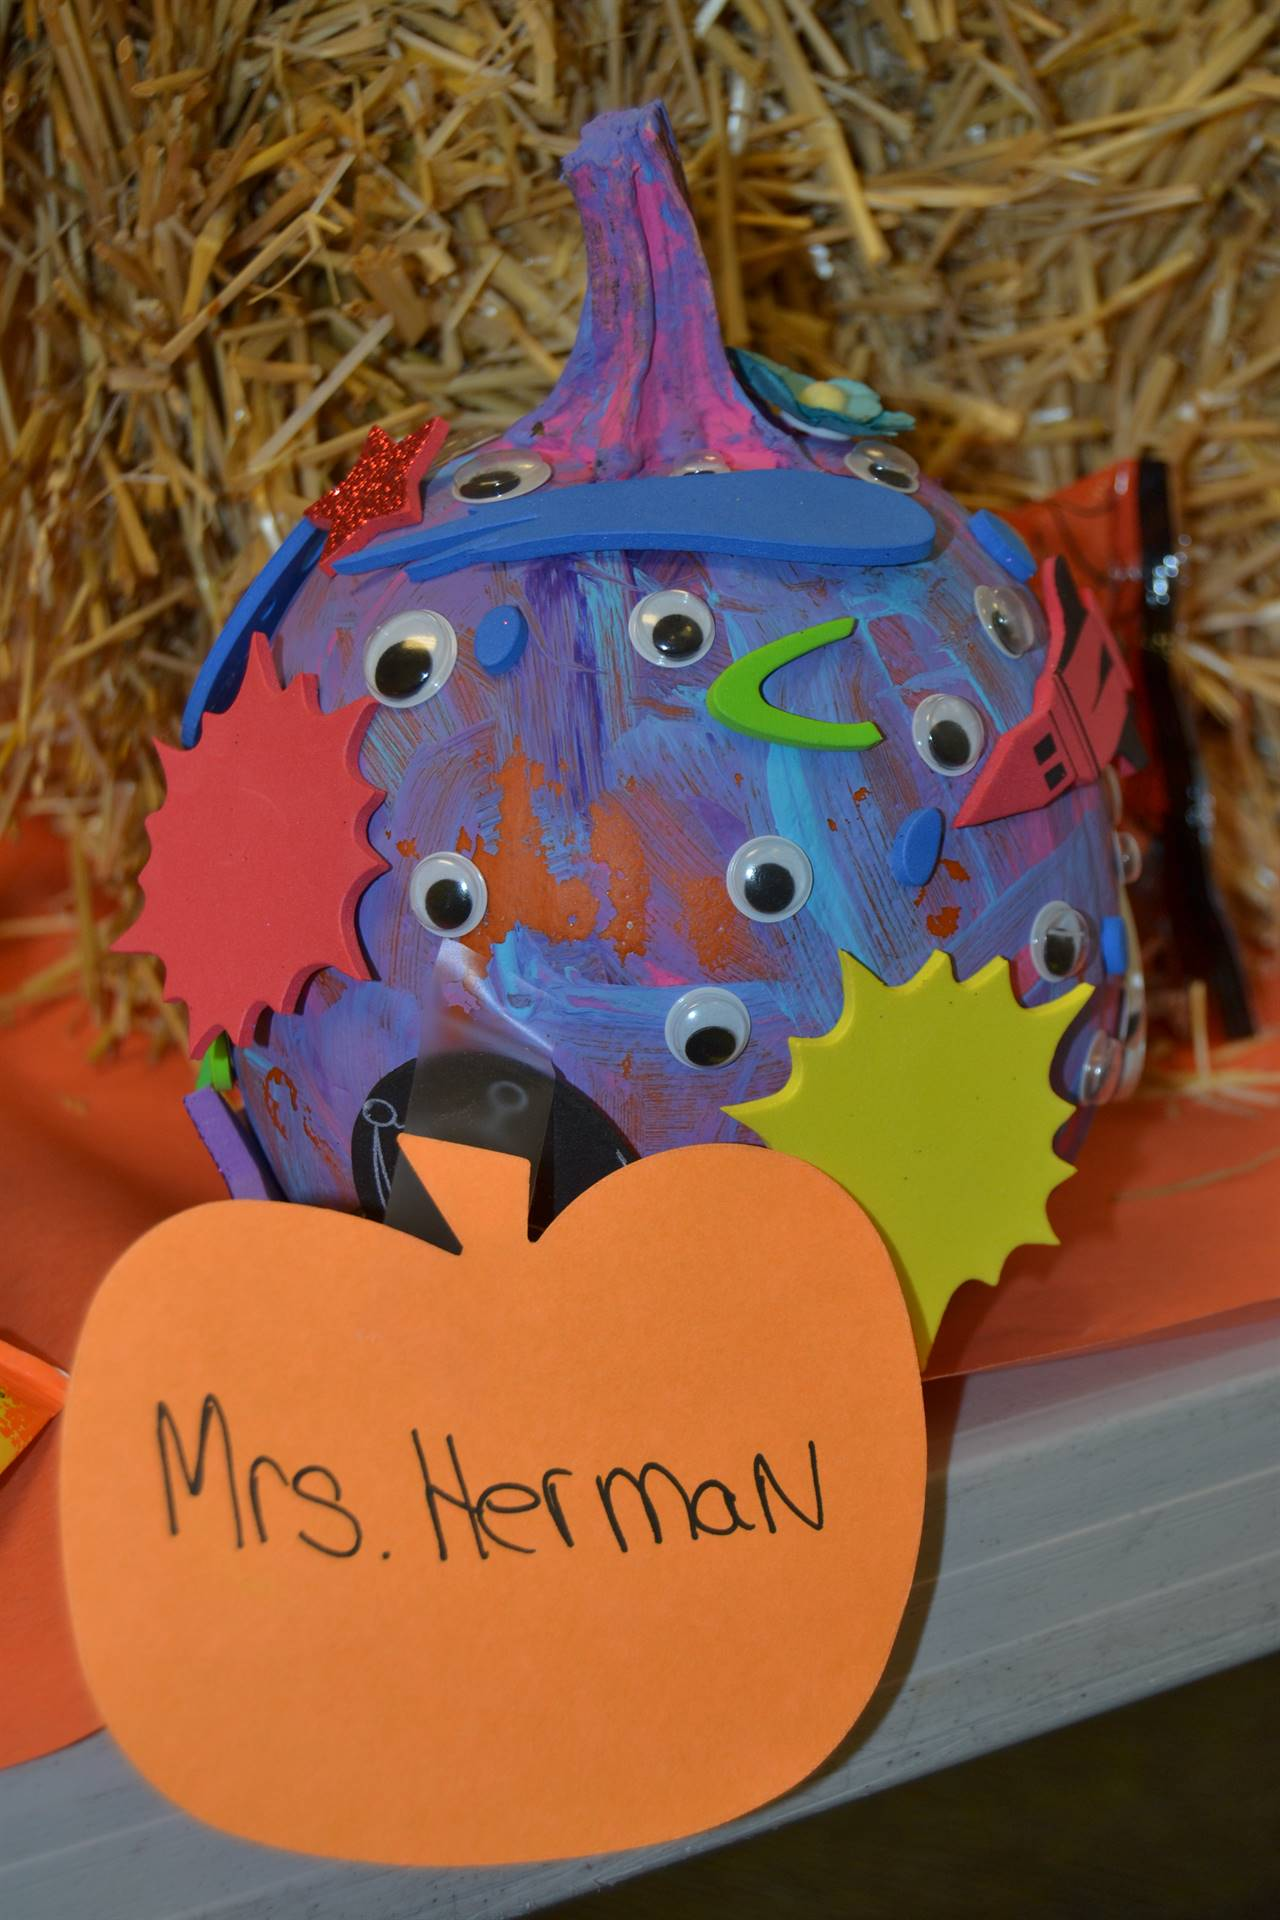 Pumpkin created by Mrs. Herman